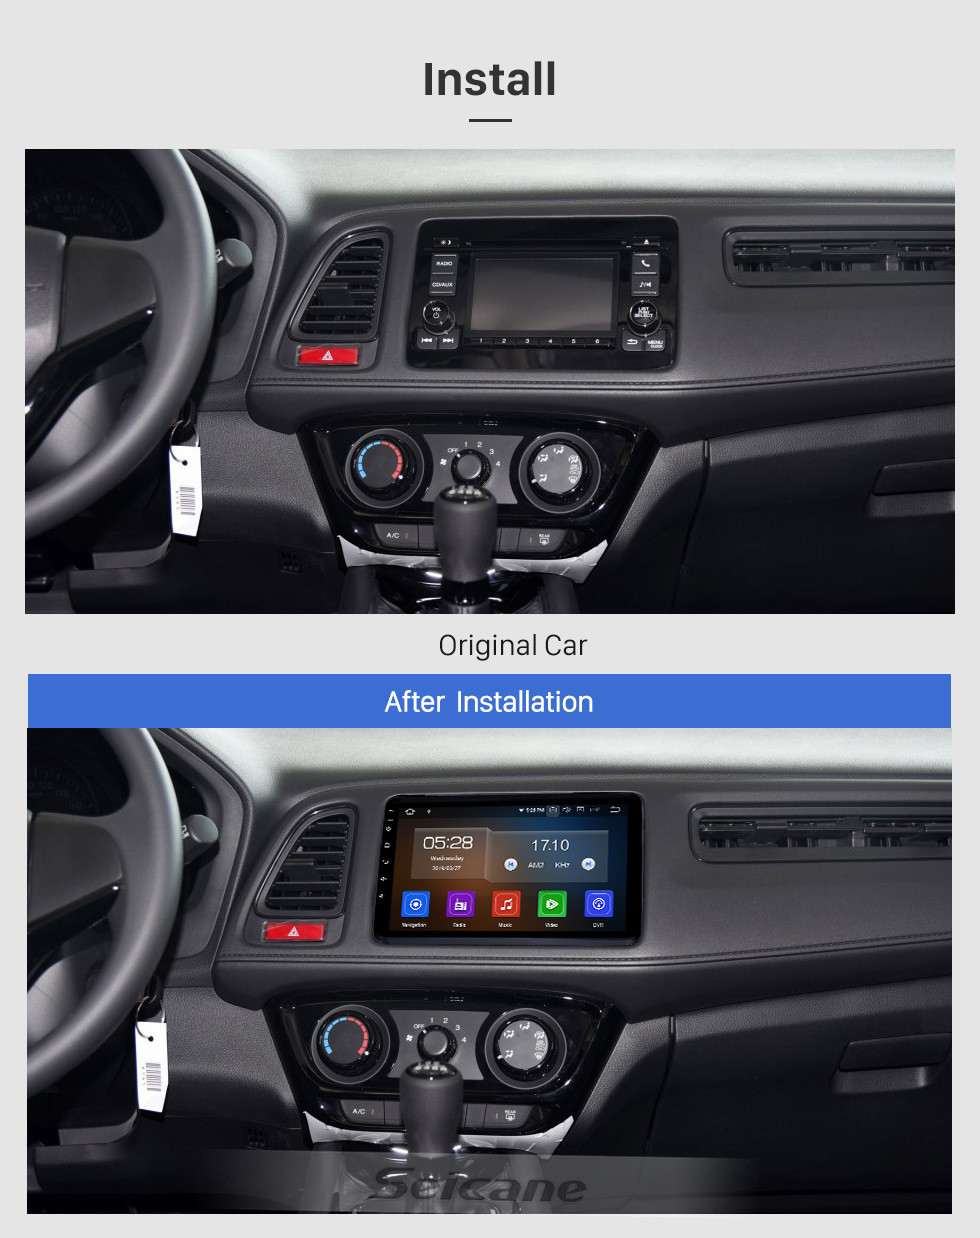 Seicane 9 inch 2015-2017 HONDA VEZEL XVR Android 10.0 GPS Navigation System with Bluetooth WIFI Radio support OBD2 USB Backup Camera Didital TV Steering wheel Control Mirror Link